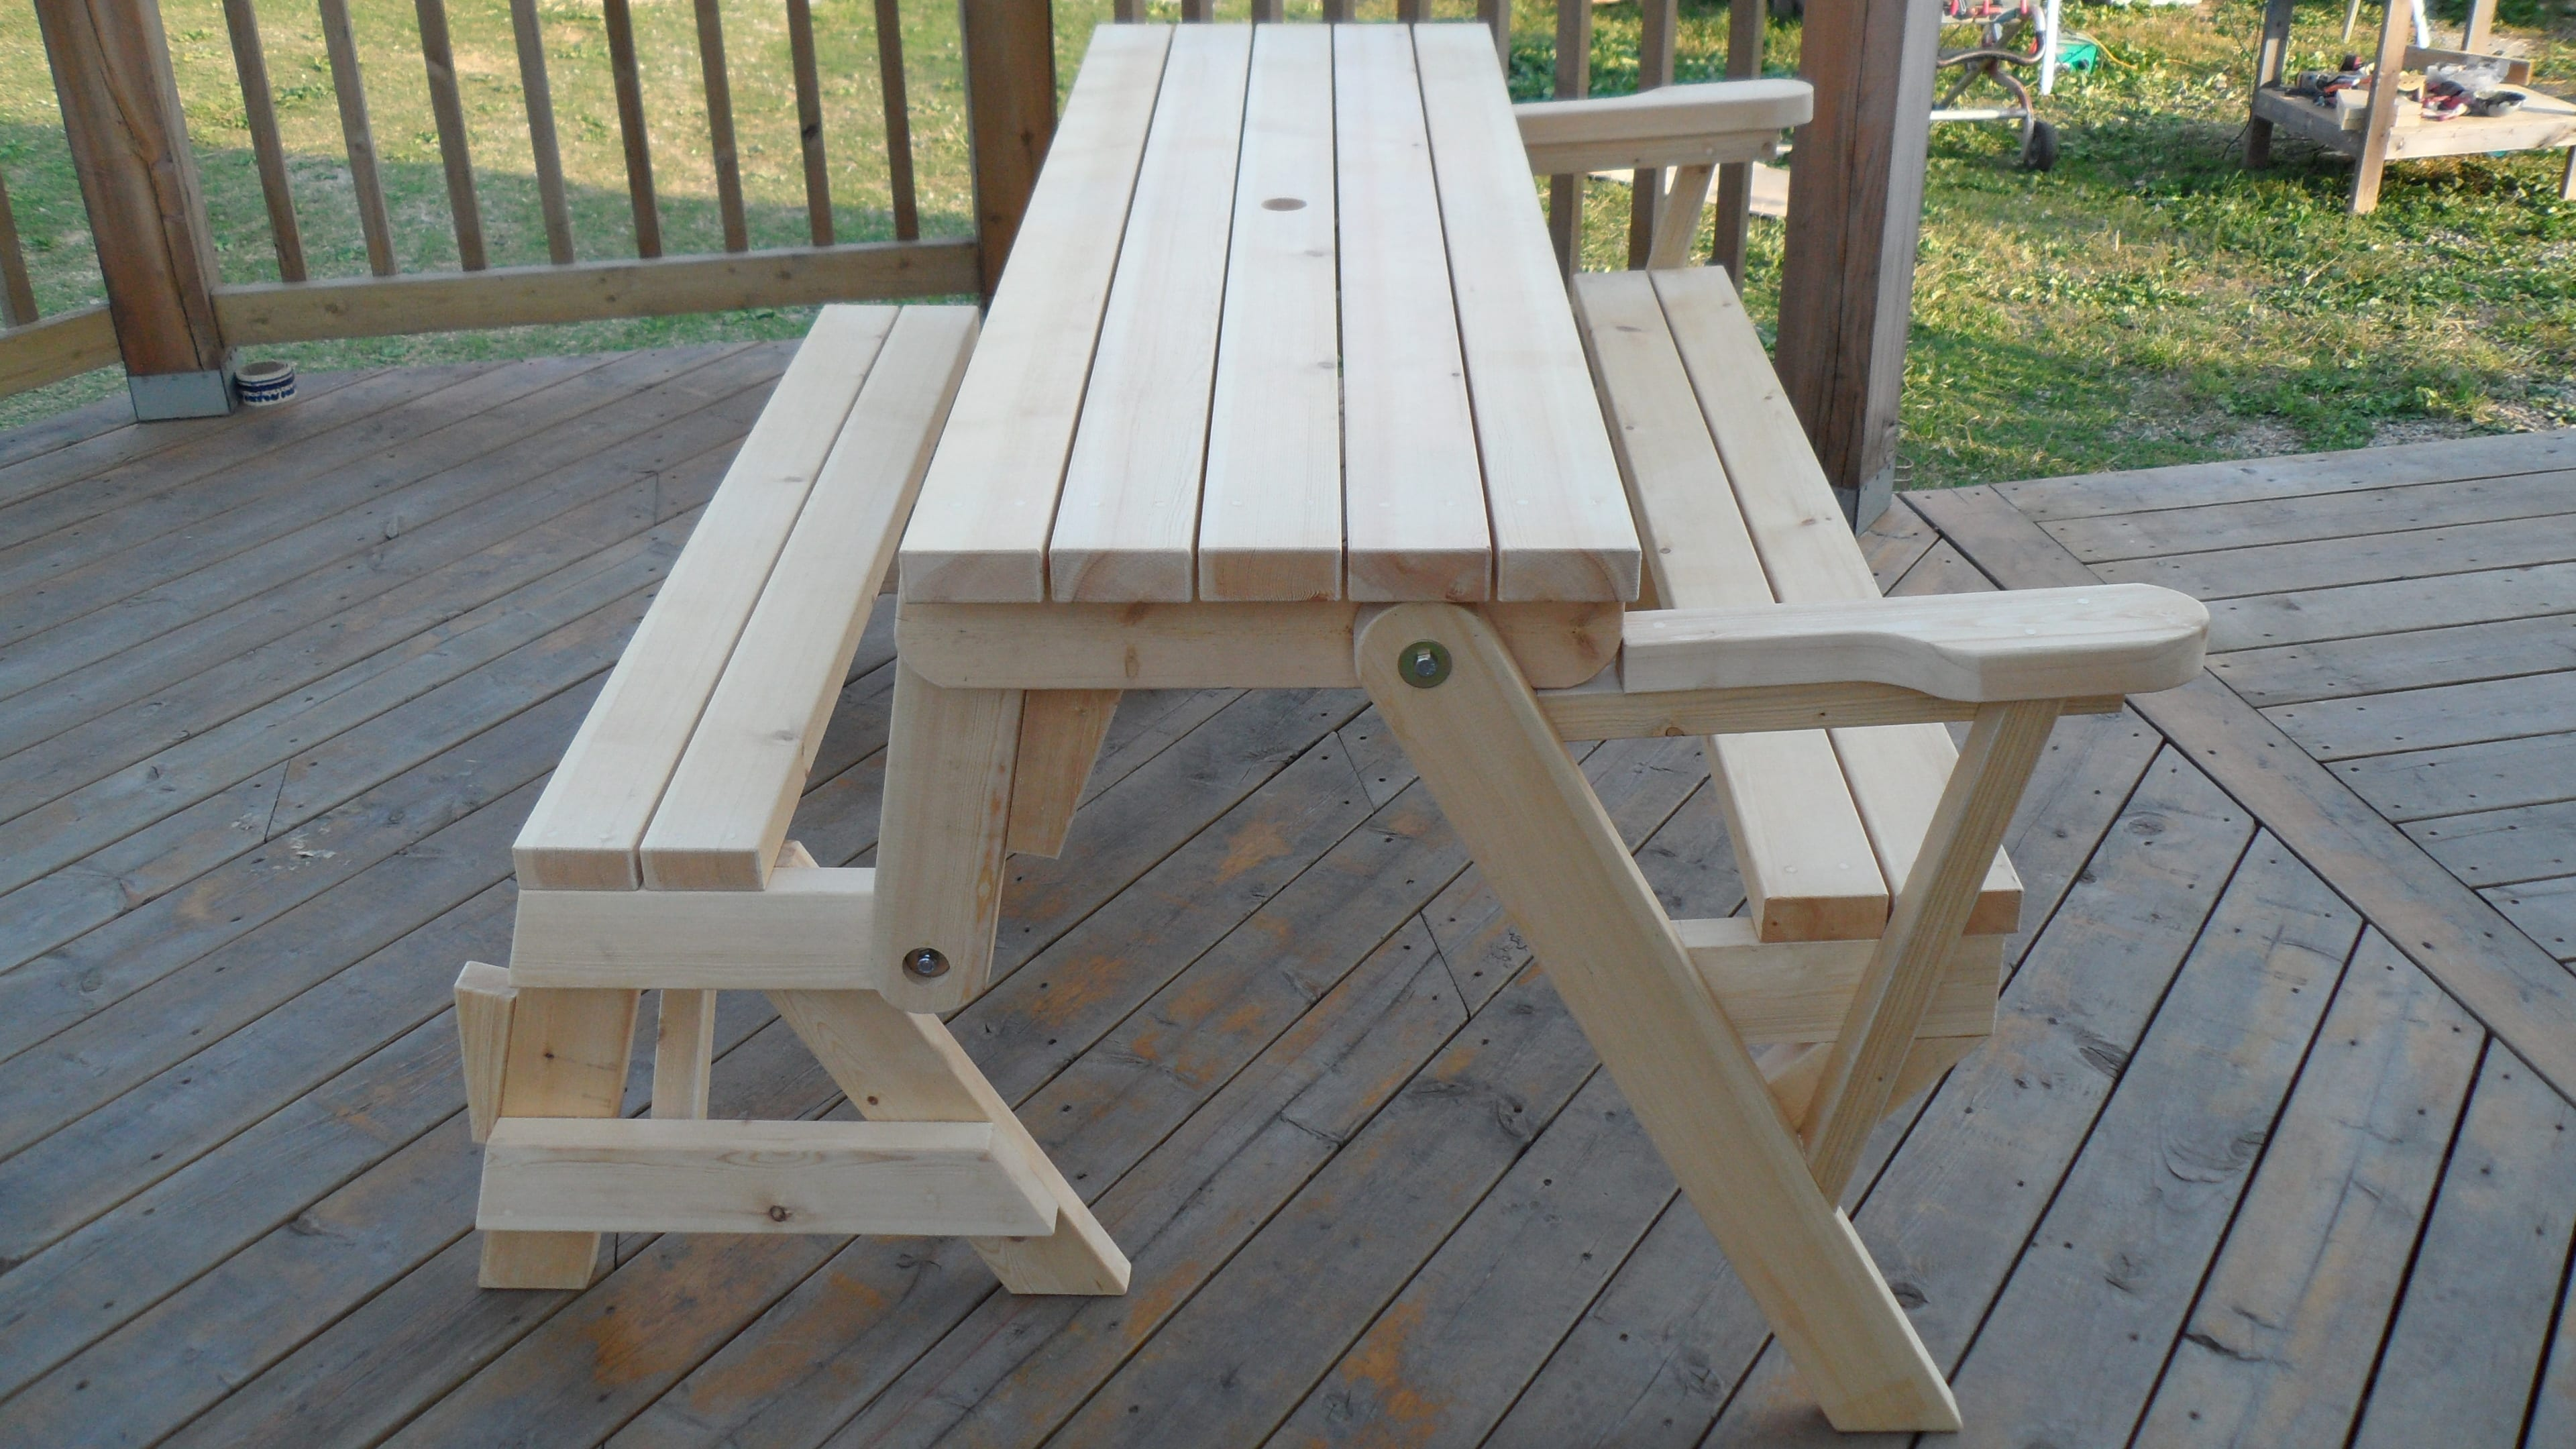 to build a folding picnic table how to build a folding picnic table ...